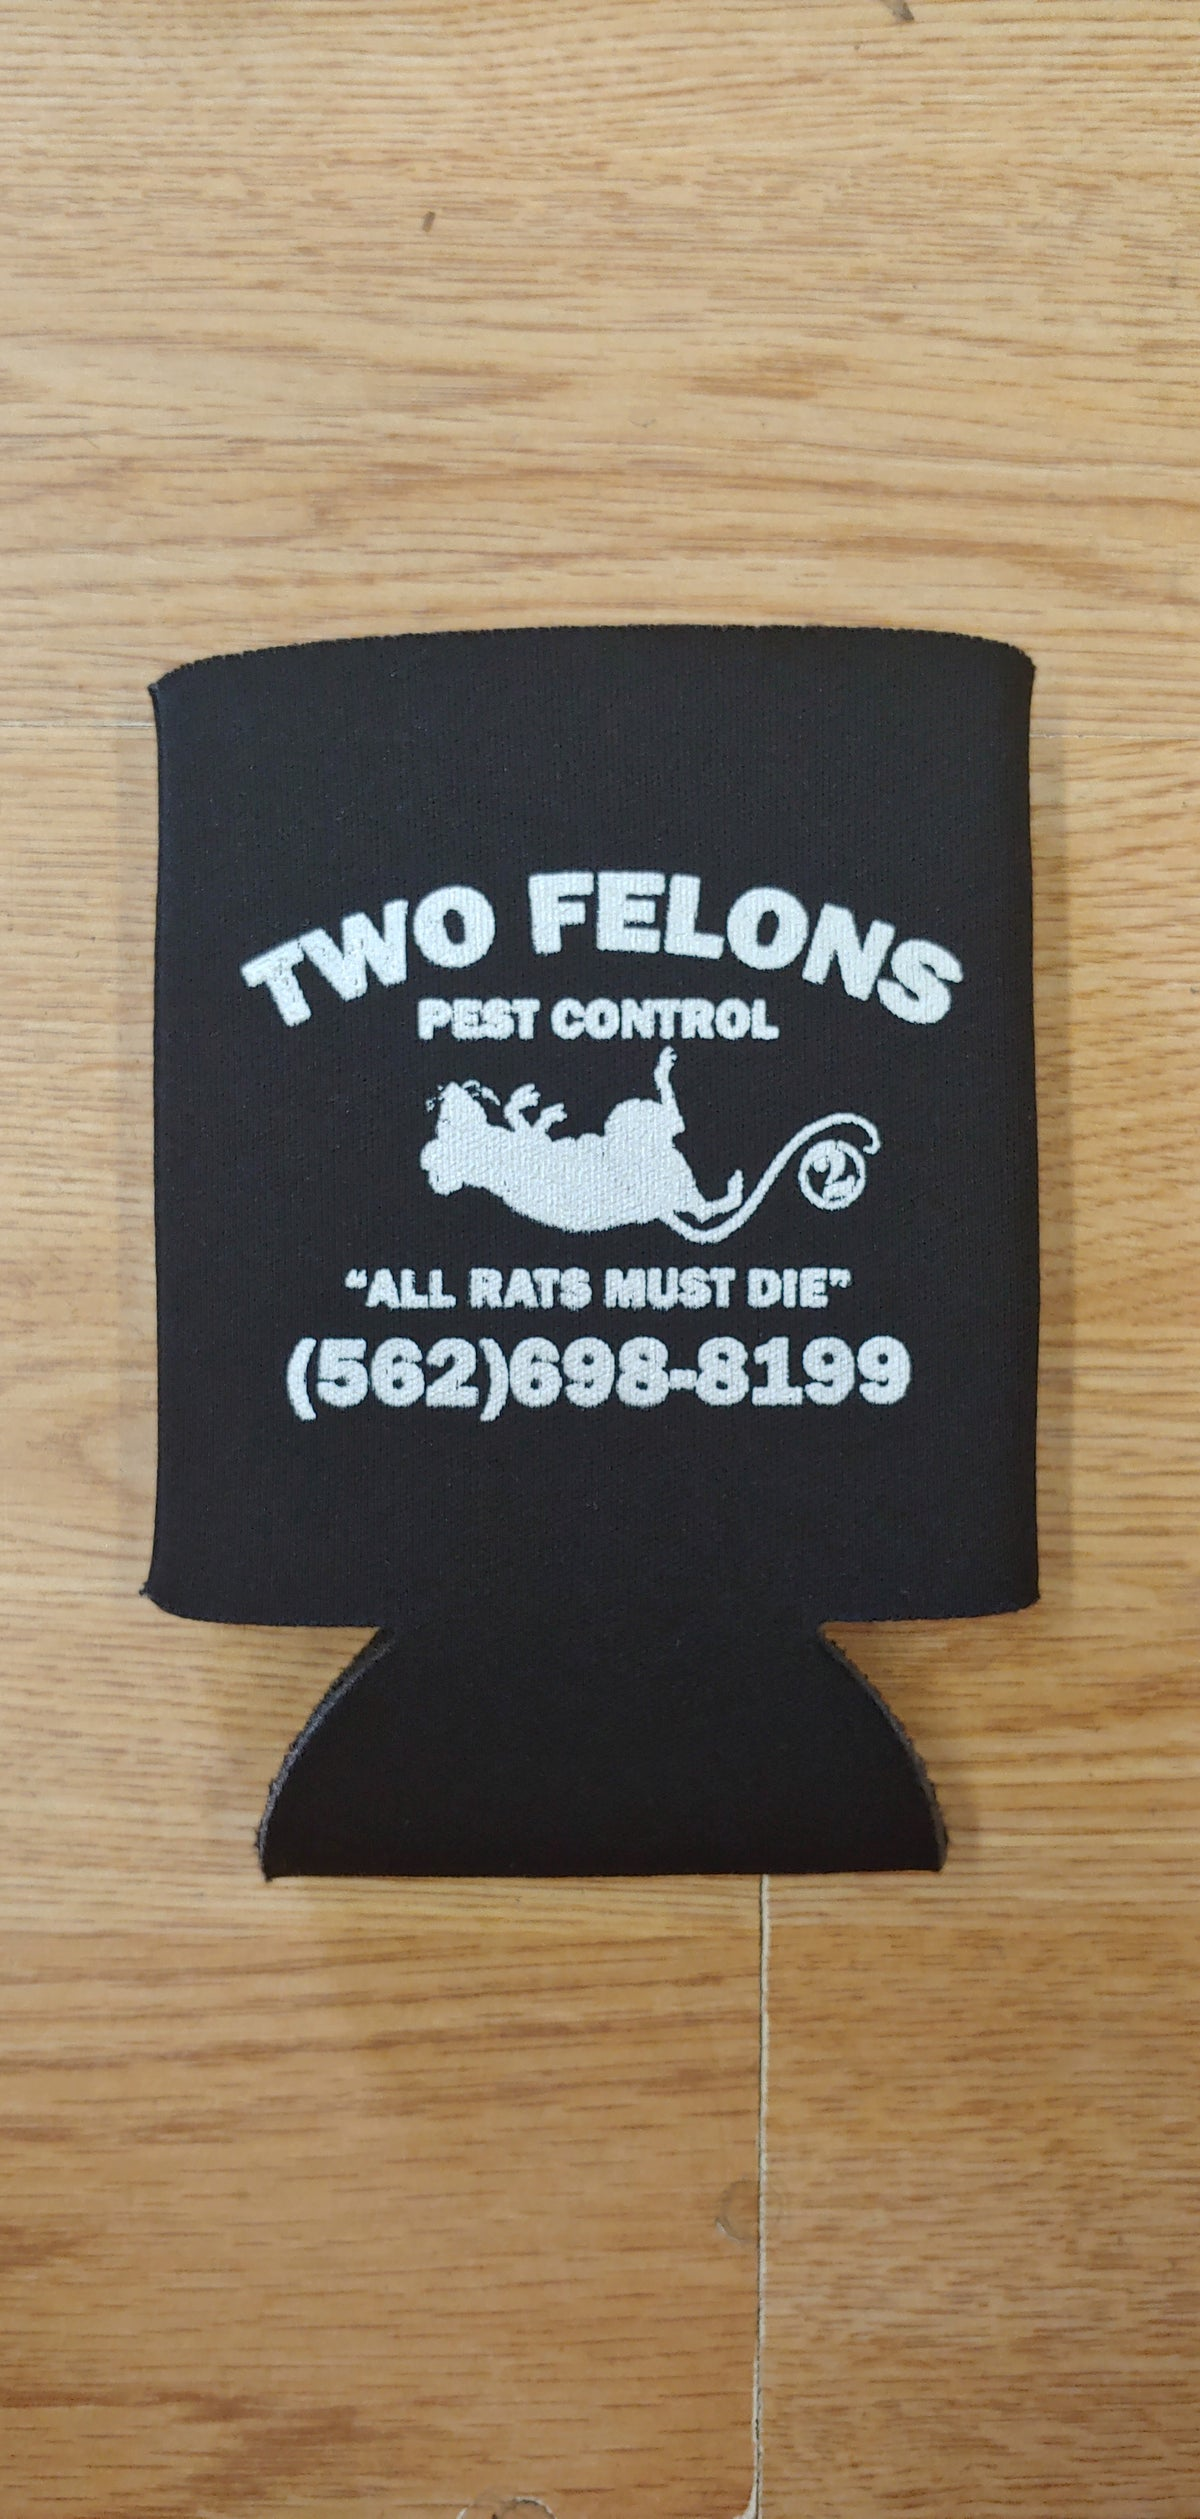 Two Felons Pest Control can coolers